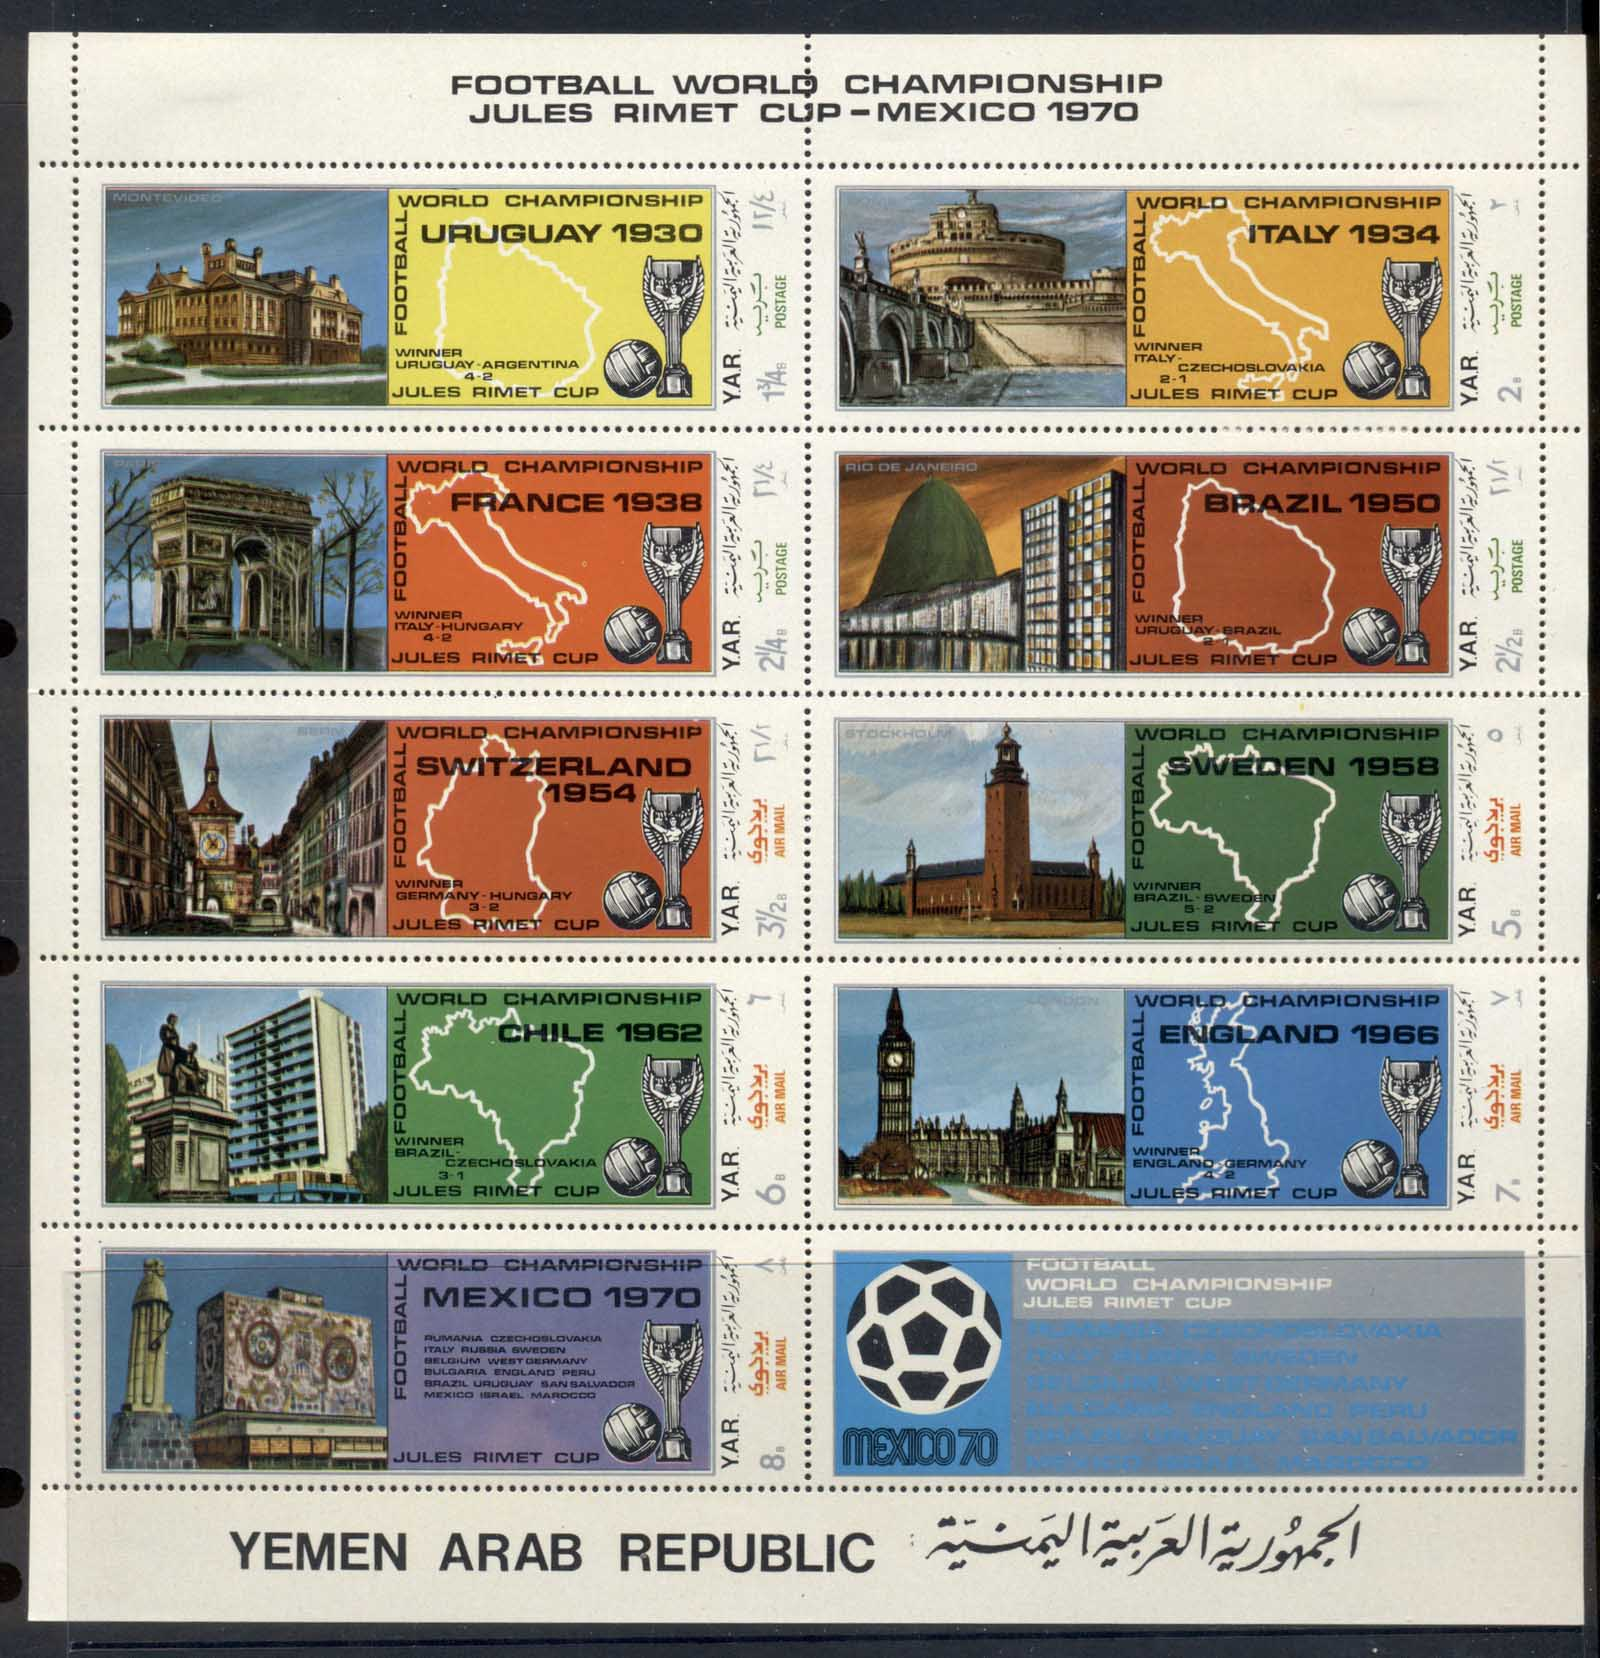 Yemen 1970 Mi#1088-1096 World Cup Soccer Mexico, Previous Venues, Israel un-redacted sheetlet MLH